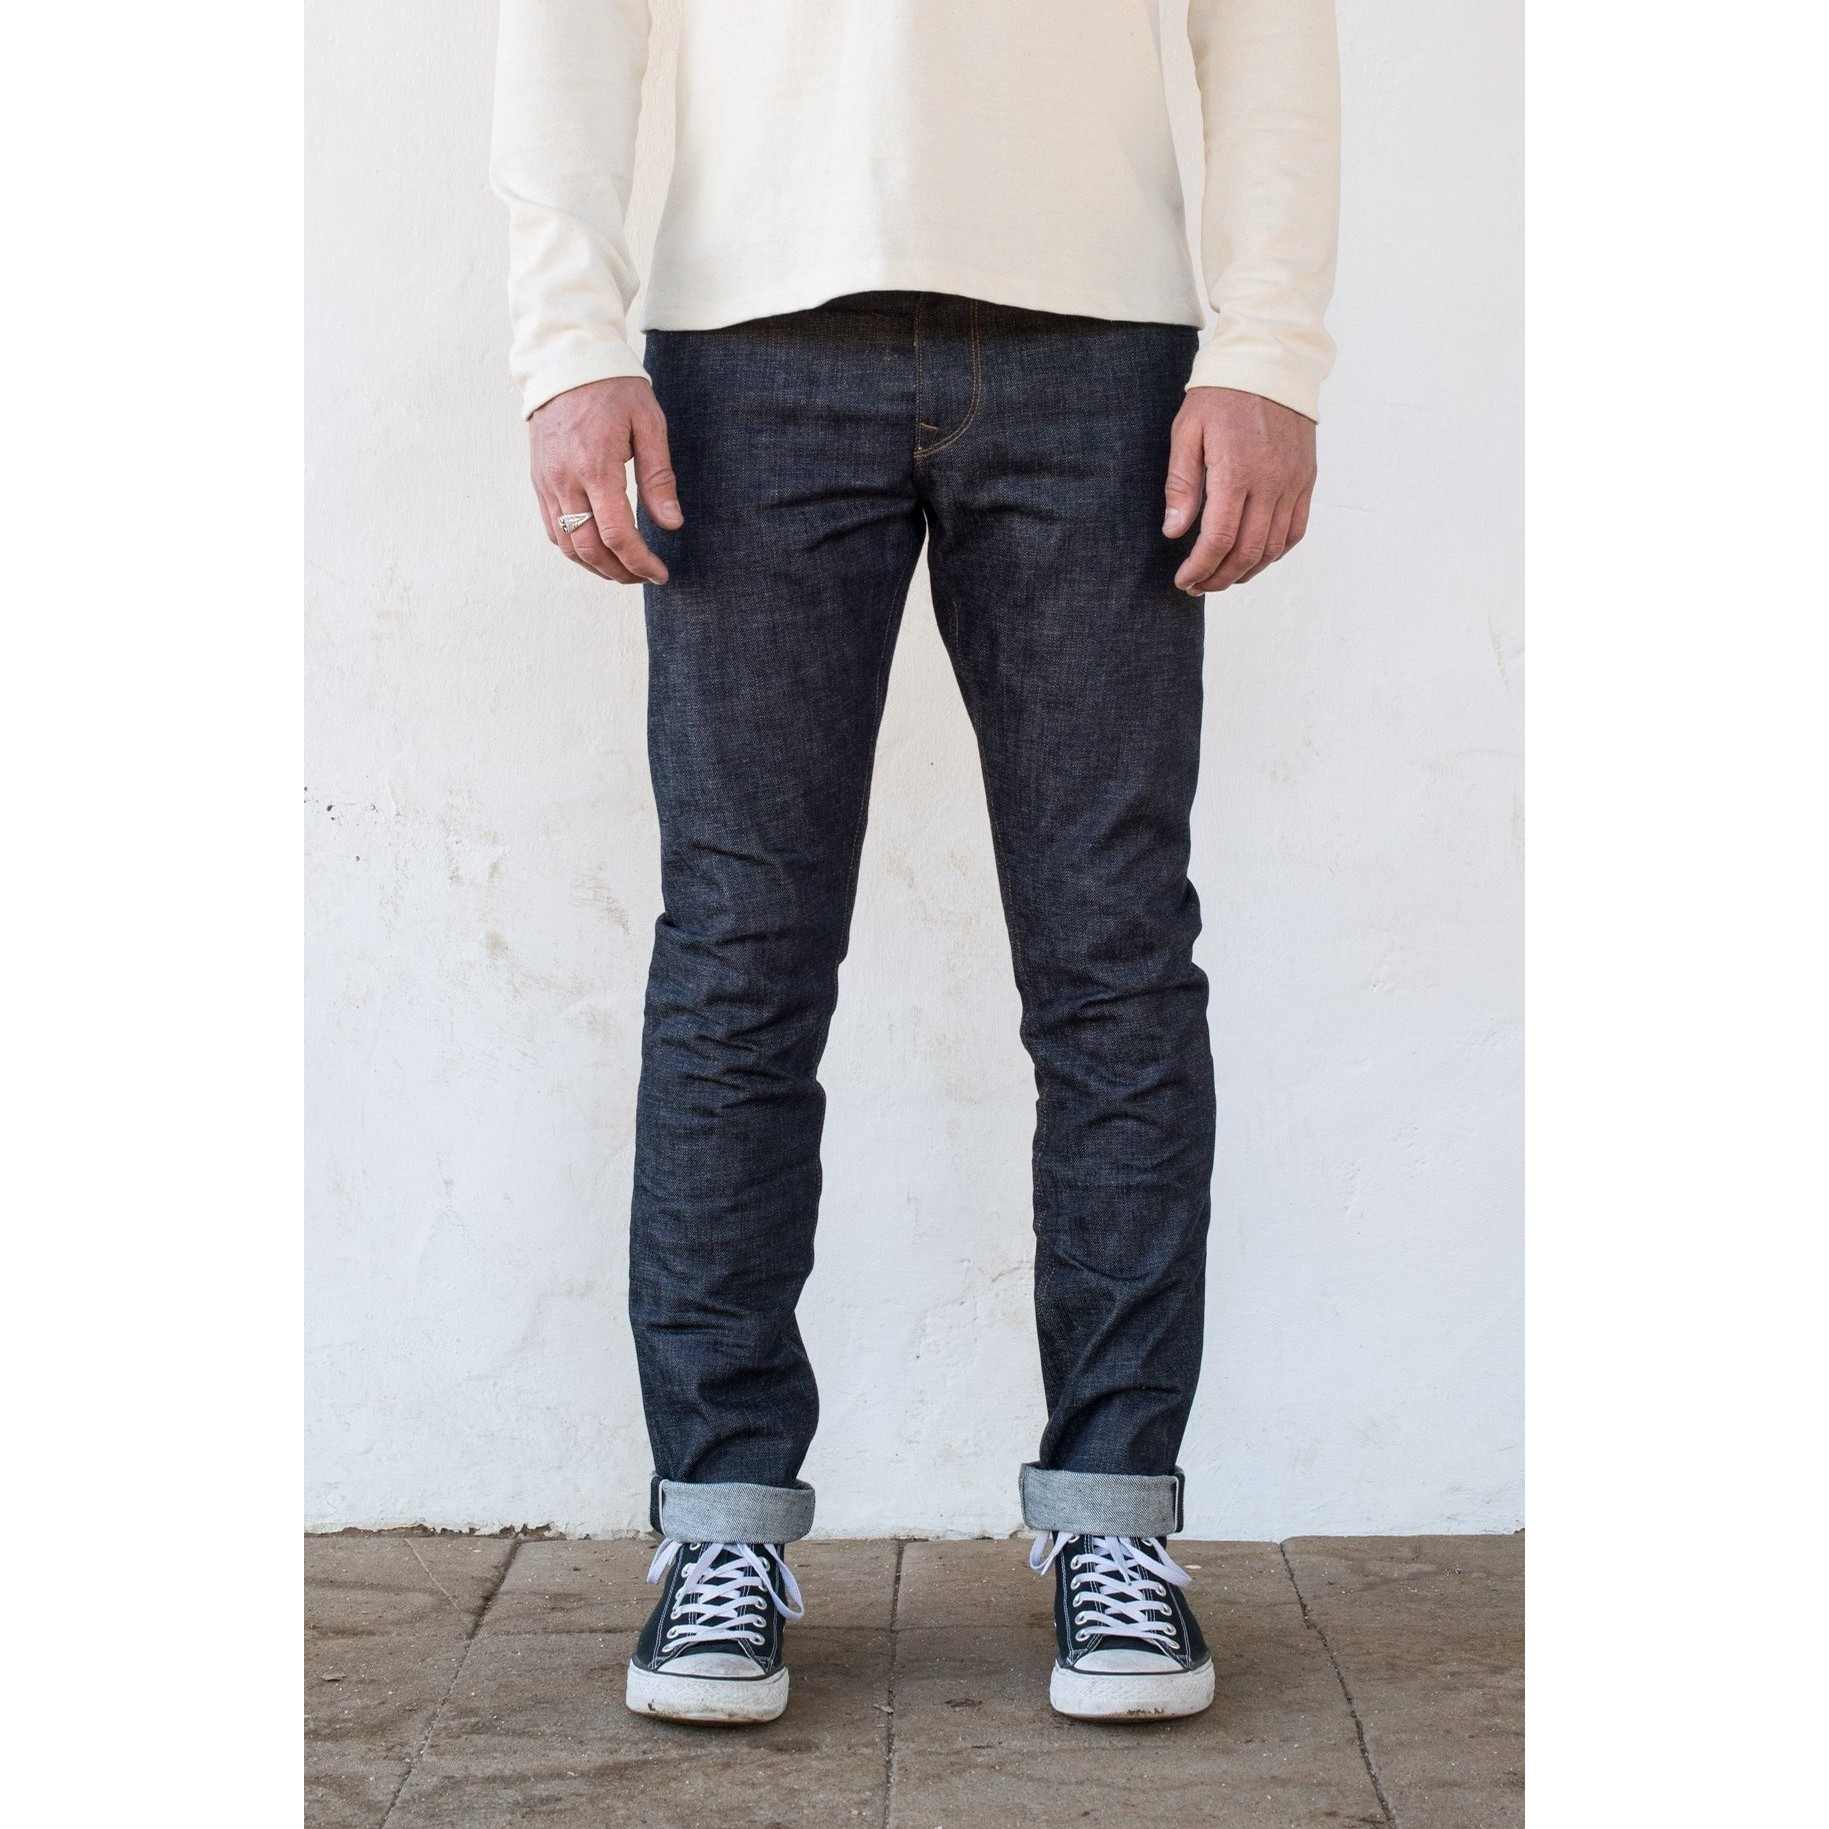 Freenote Cloth Avila Slim Taper: 13oz Natural Indigo